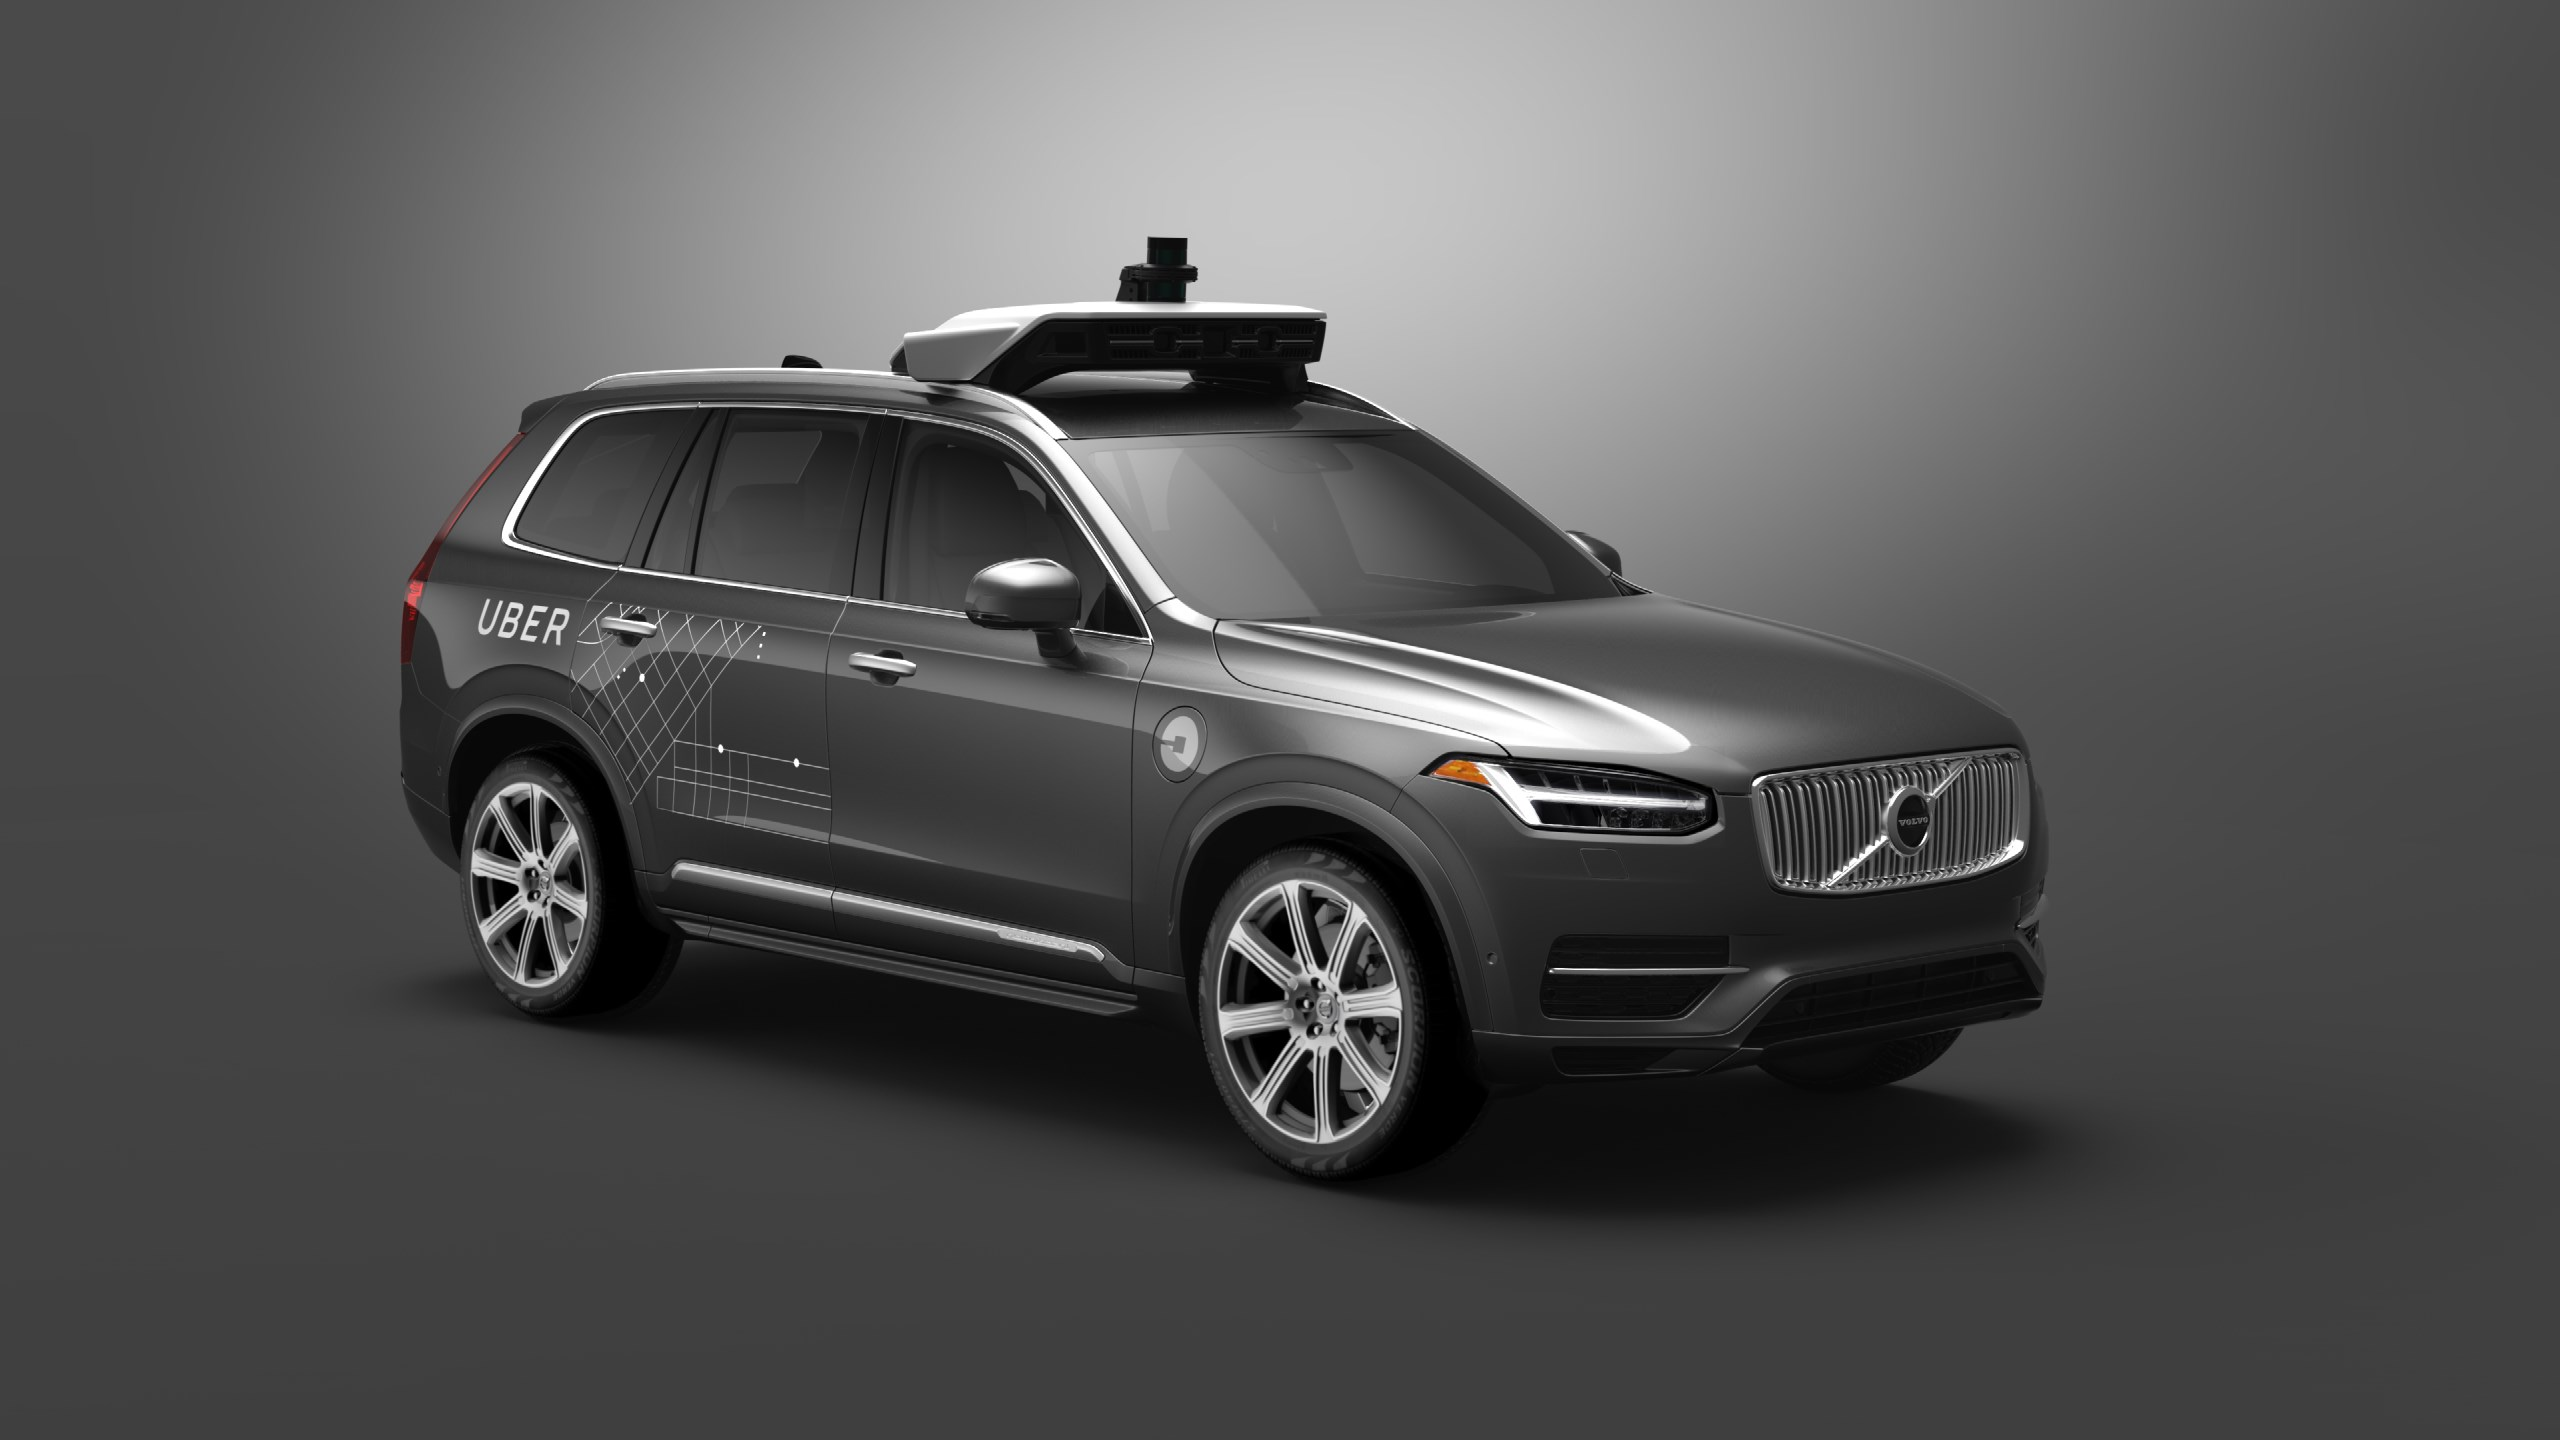 Self-driving Volvo XC90s will be available to Uber customers in Pittsburgh this month.